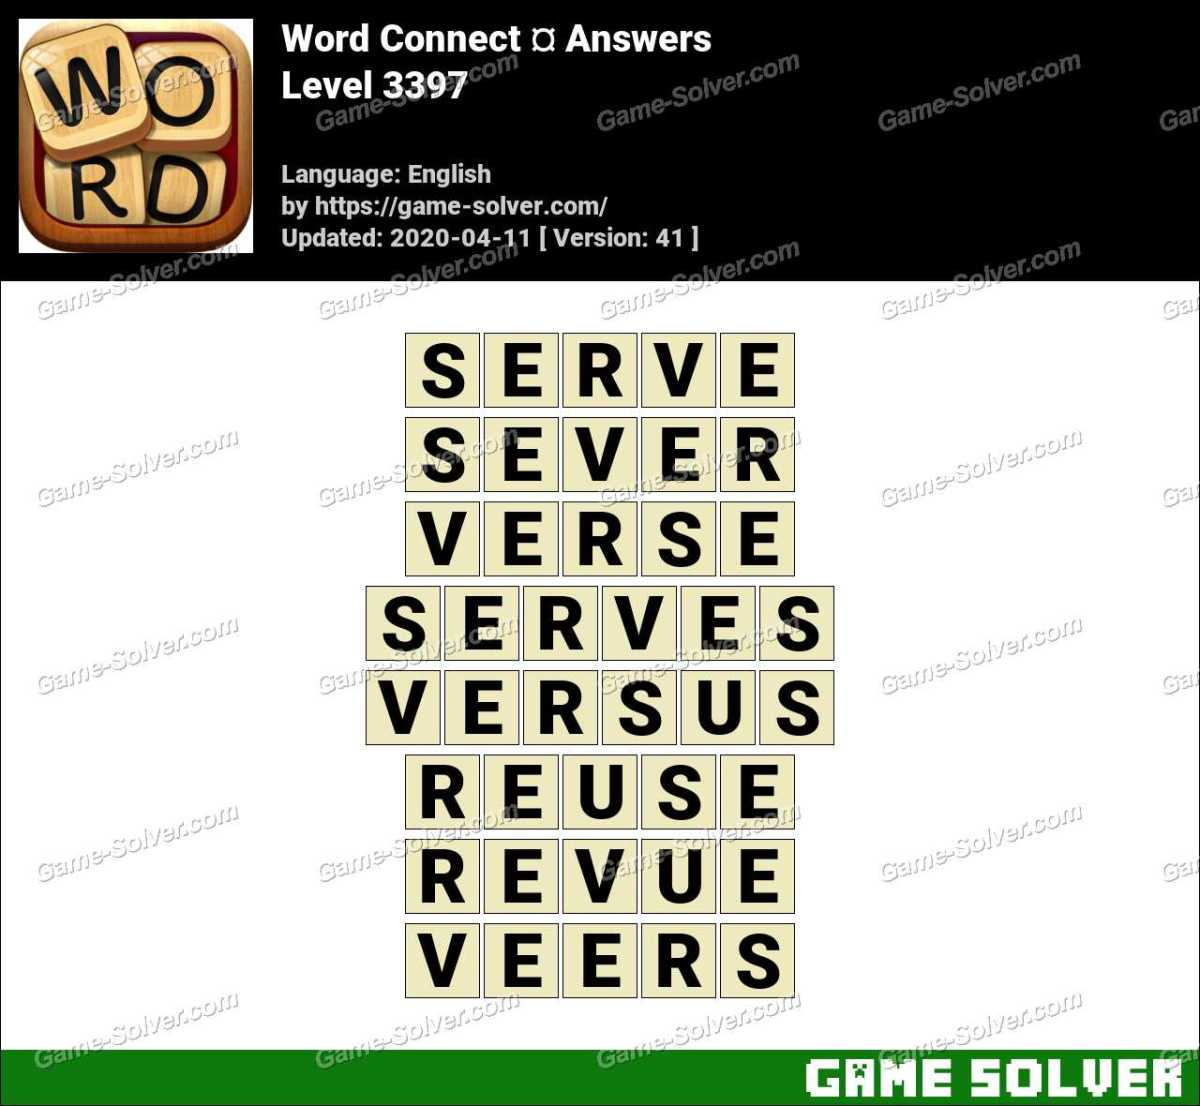 Word Connect Level 3397 Answers